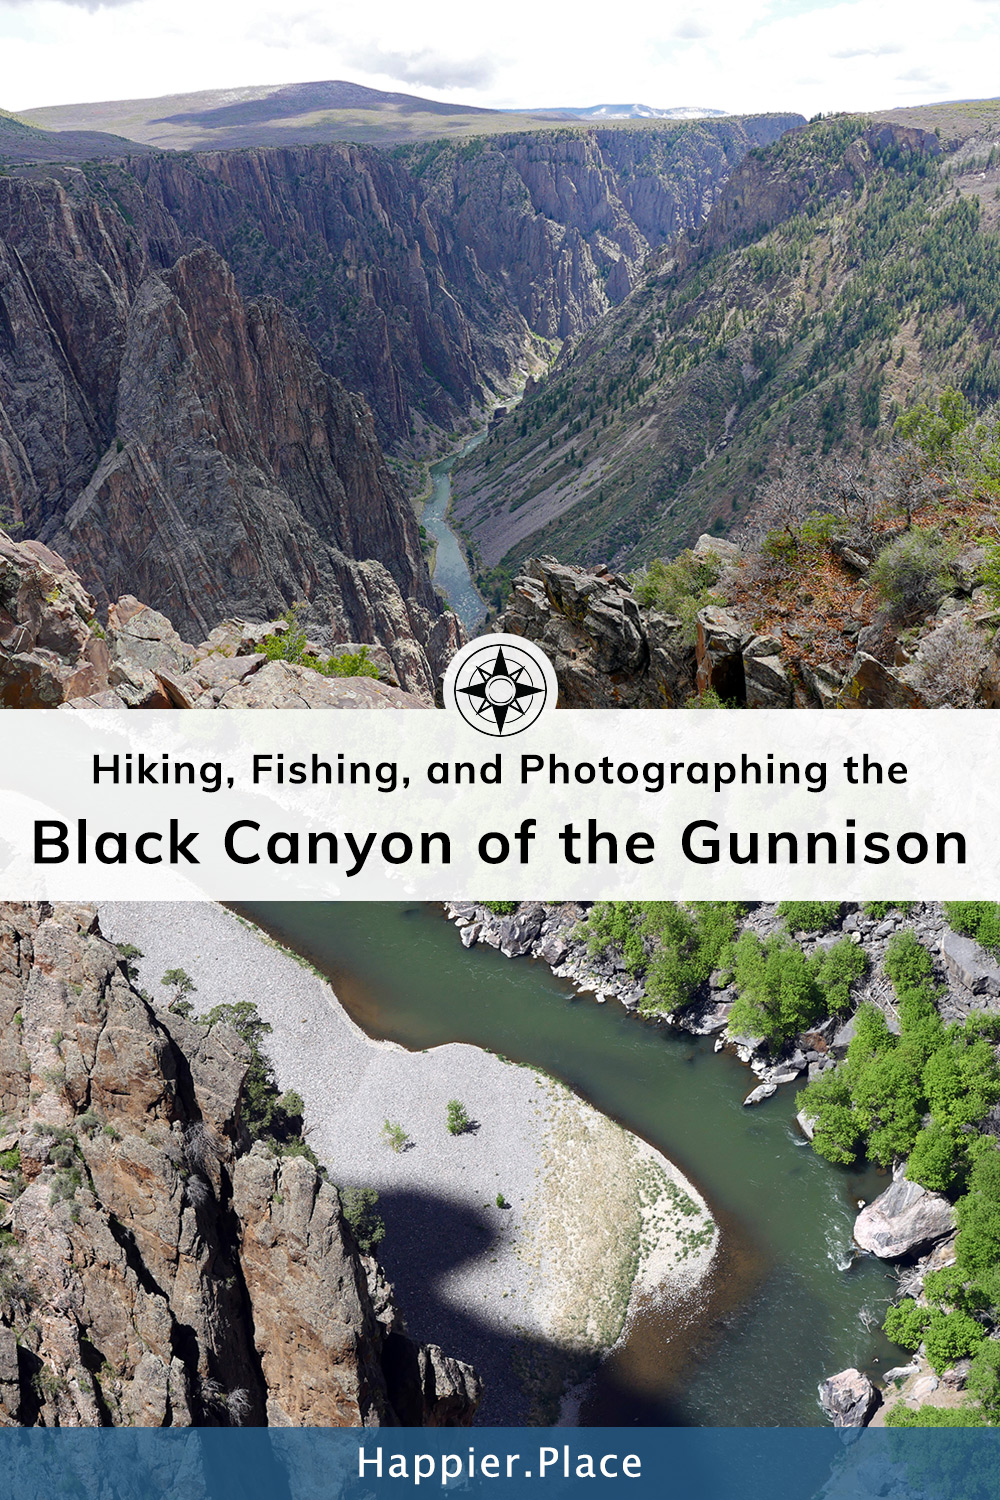 Hiking, Fishing and Photographing the Black Canyon of the Gunnison National Park in Colorado - #HappierPlace #travelguide #Colorado #outdoors #NationalPark